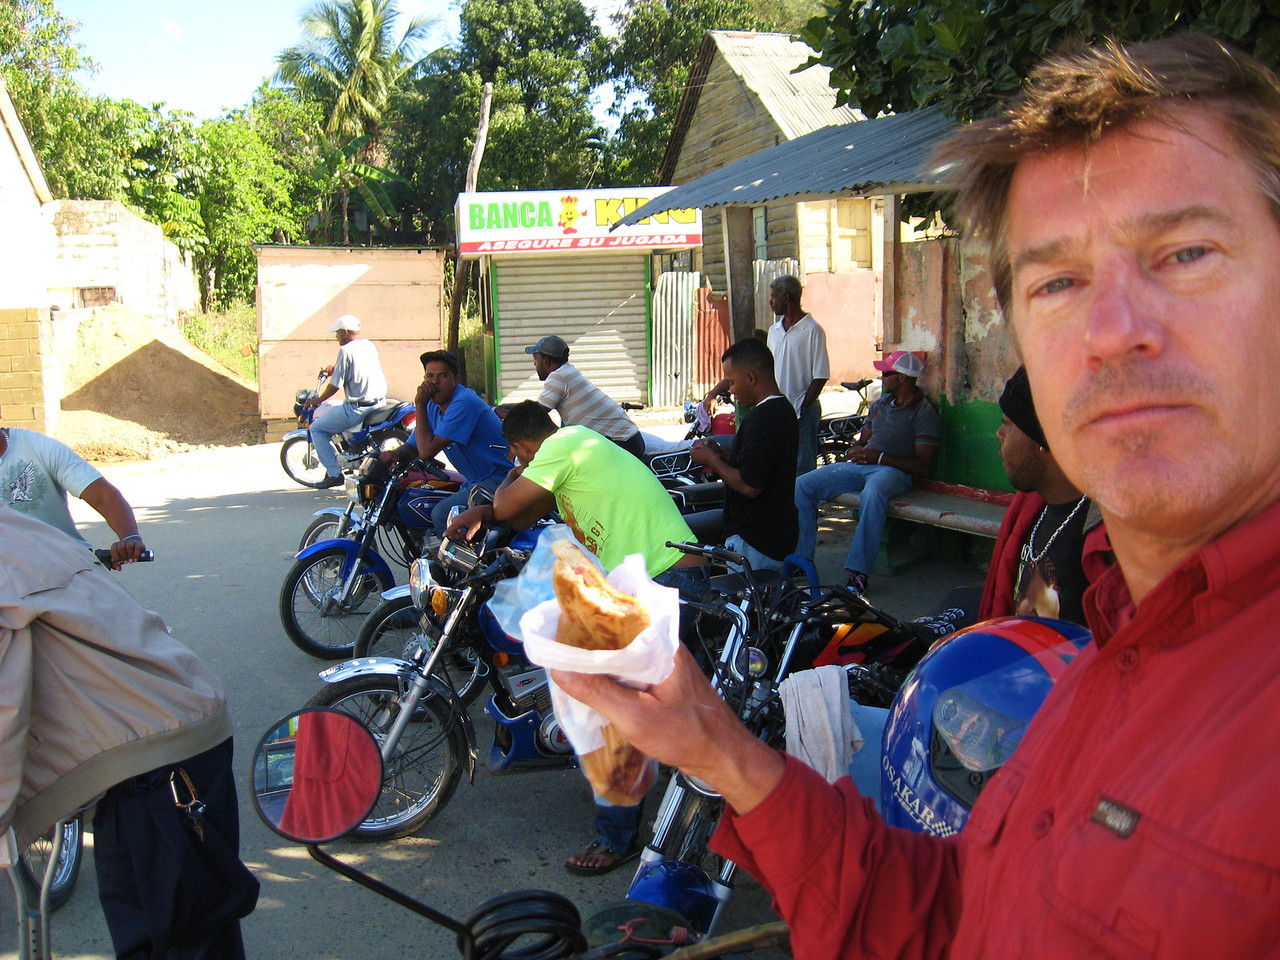 Where there are Motoconcho riders there is usually good local food. The riders are a good source for local information and directions, and are always fun to chit-chat with.